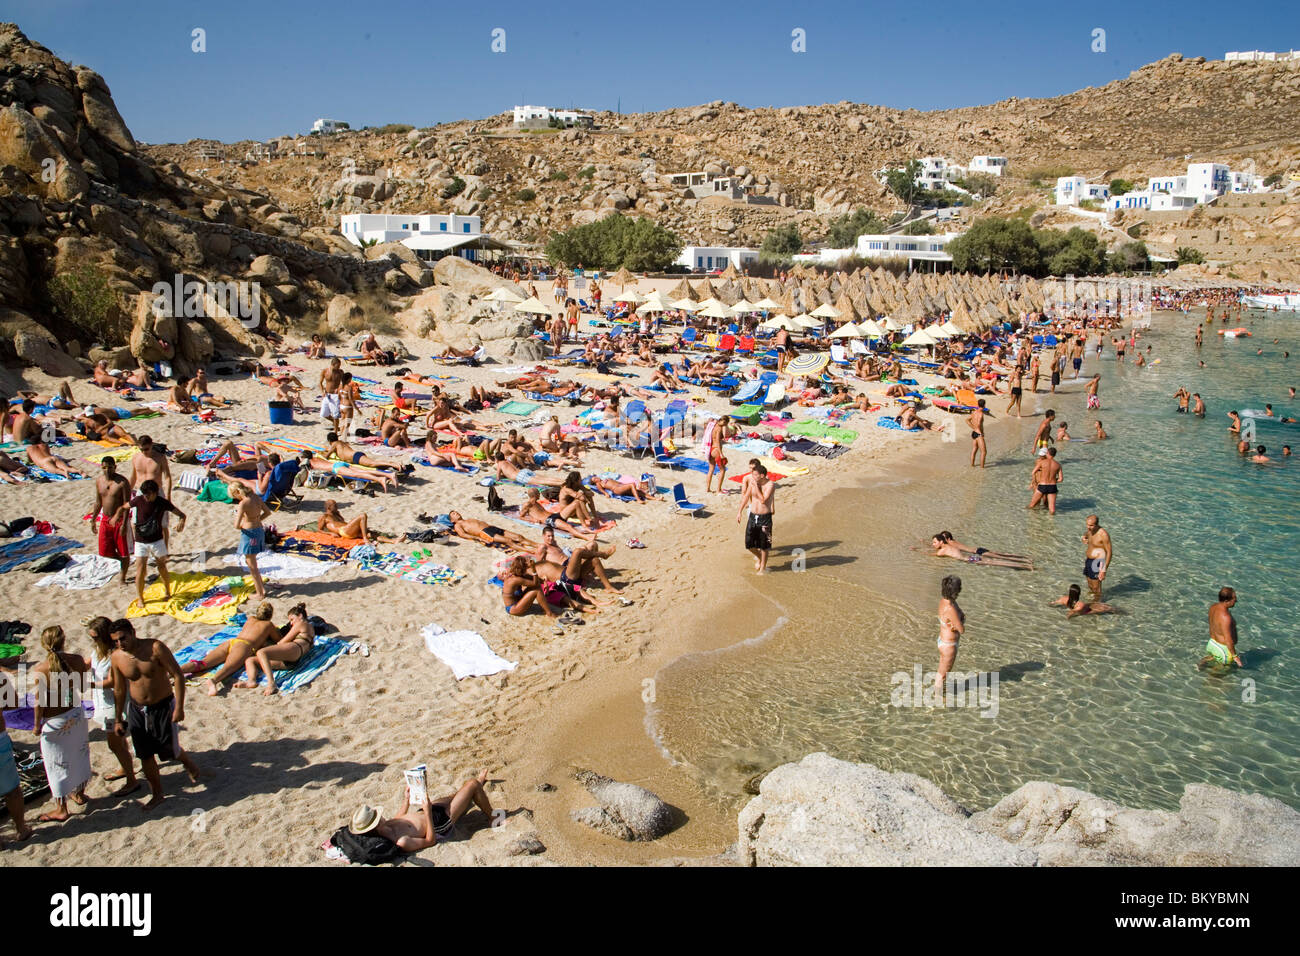 Best Island Beaches For Partying Mykonos St Barts: People Bathing At Super Paradise Beach, Knowing As A